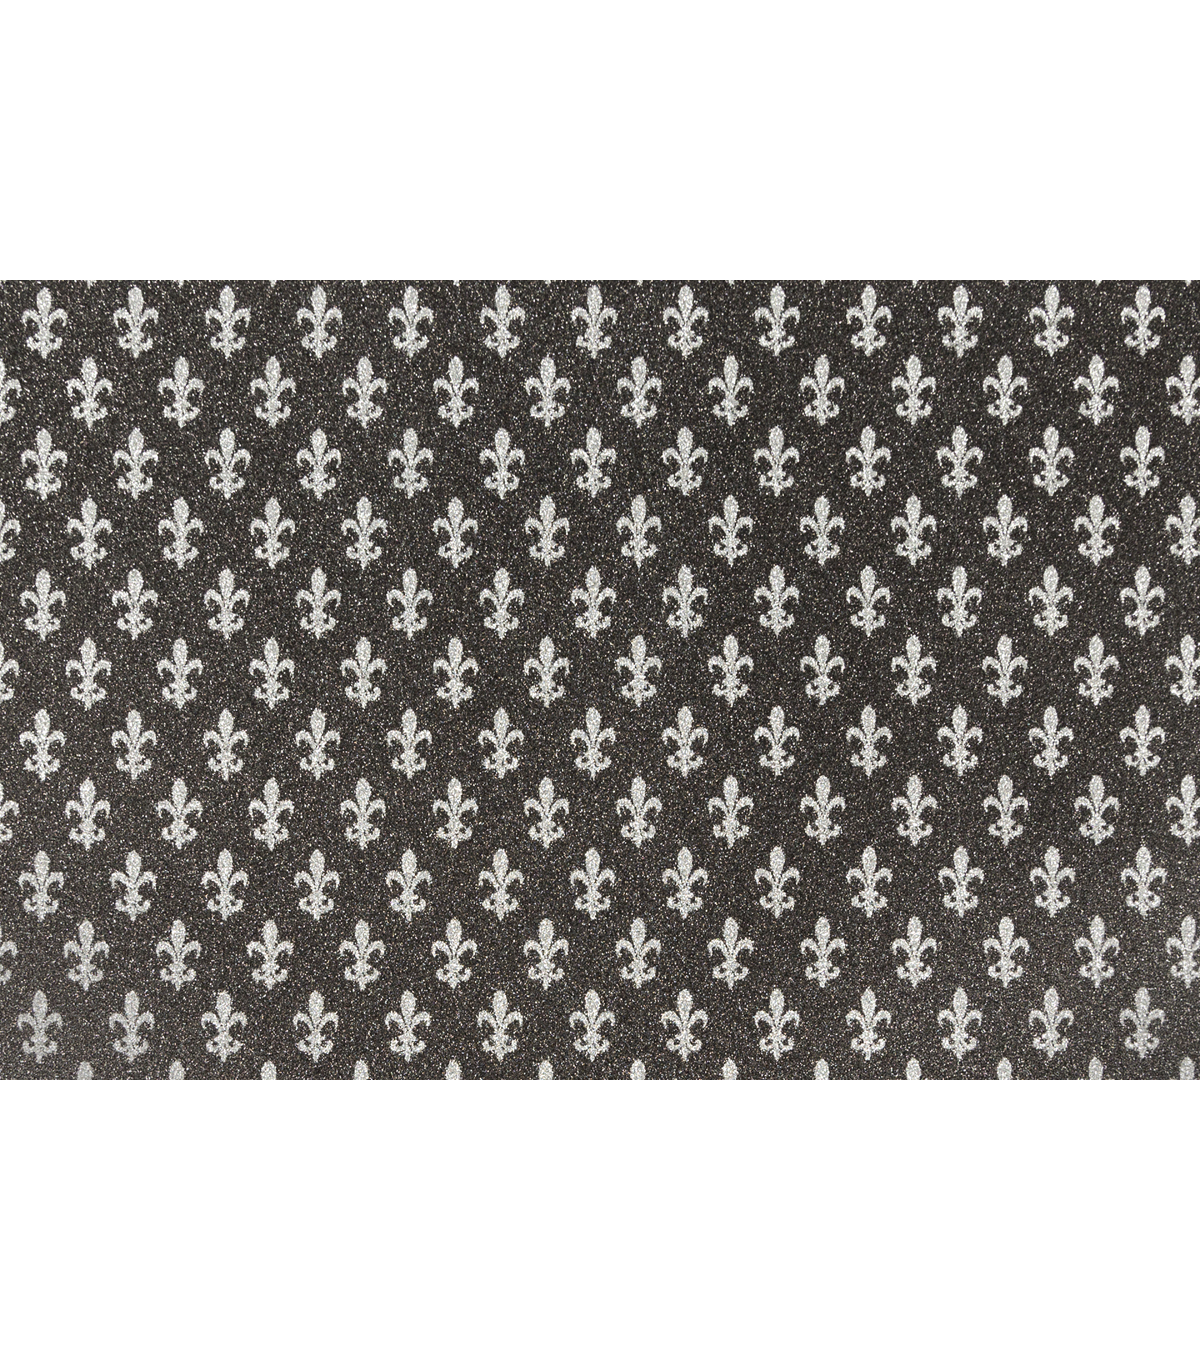 Cricut® 10 Pack 12\u0027\u0027x12\u0027\u0027 Smooth Glitter Papers-Black & Silver